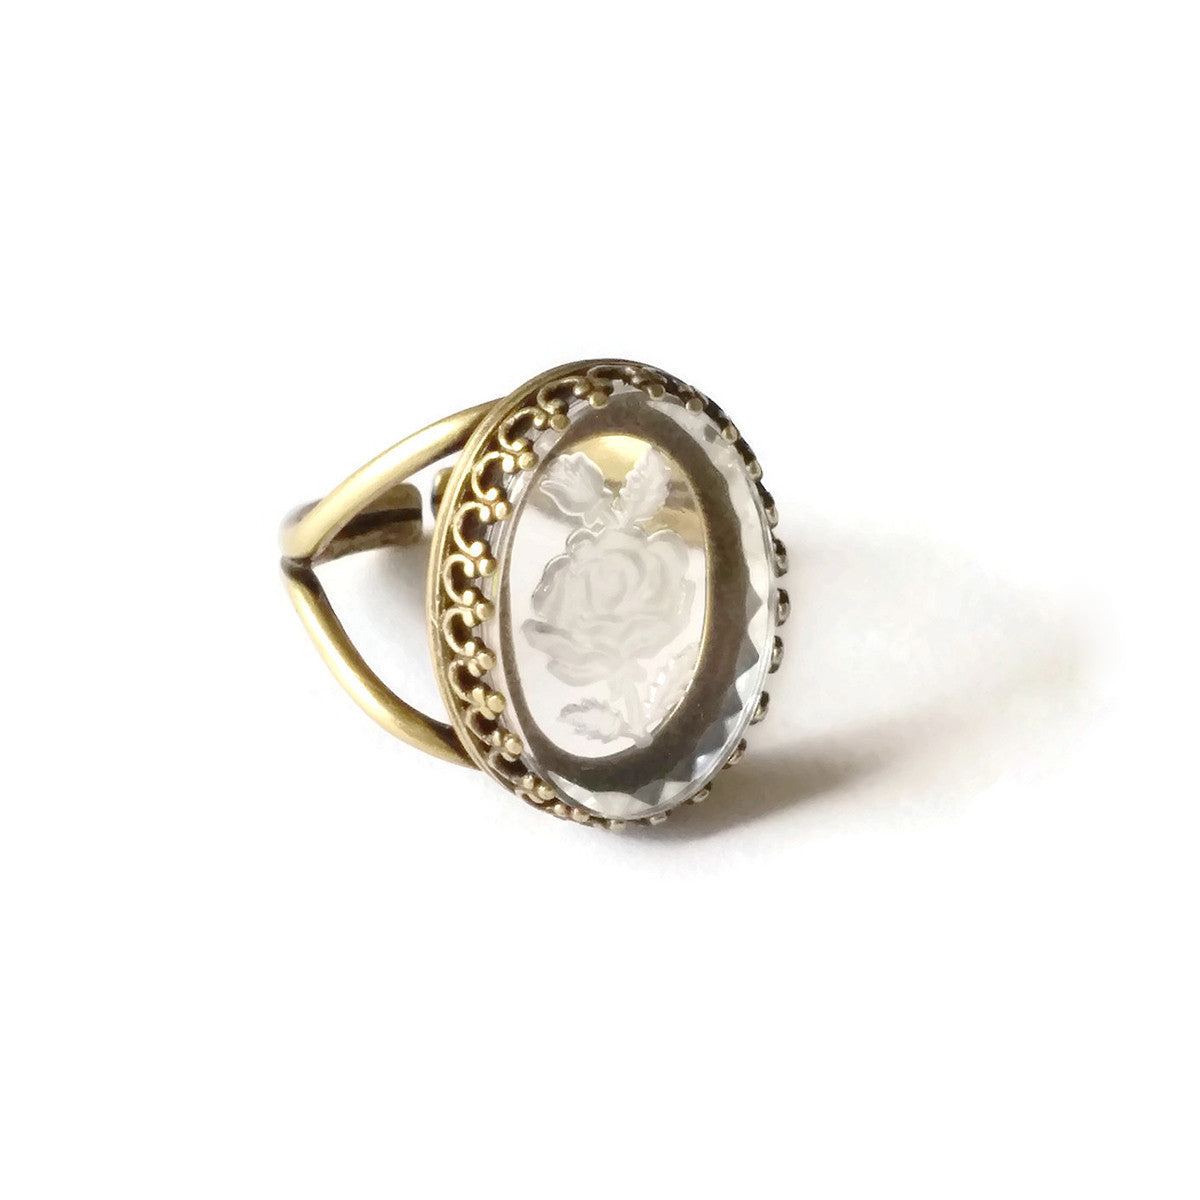 Intaglio ring with rose